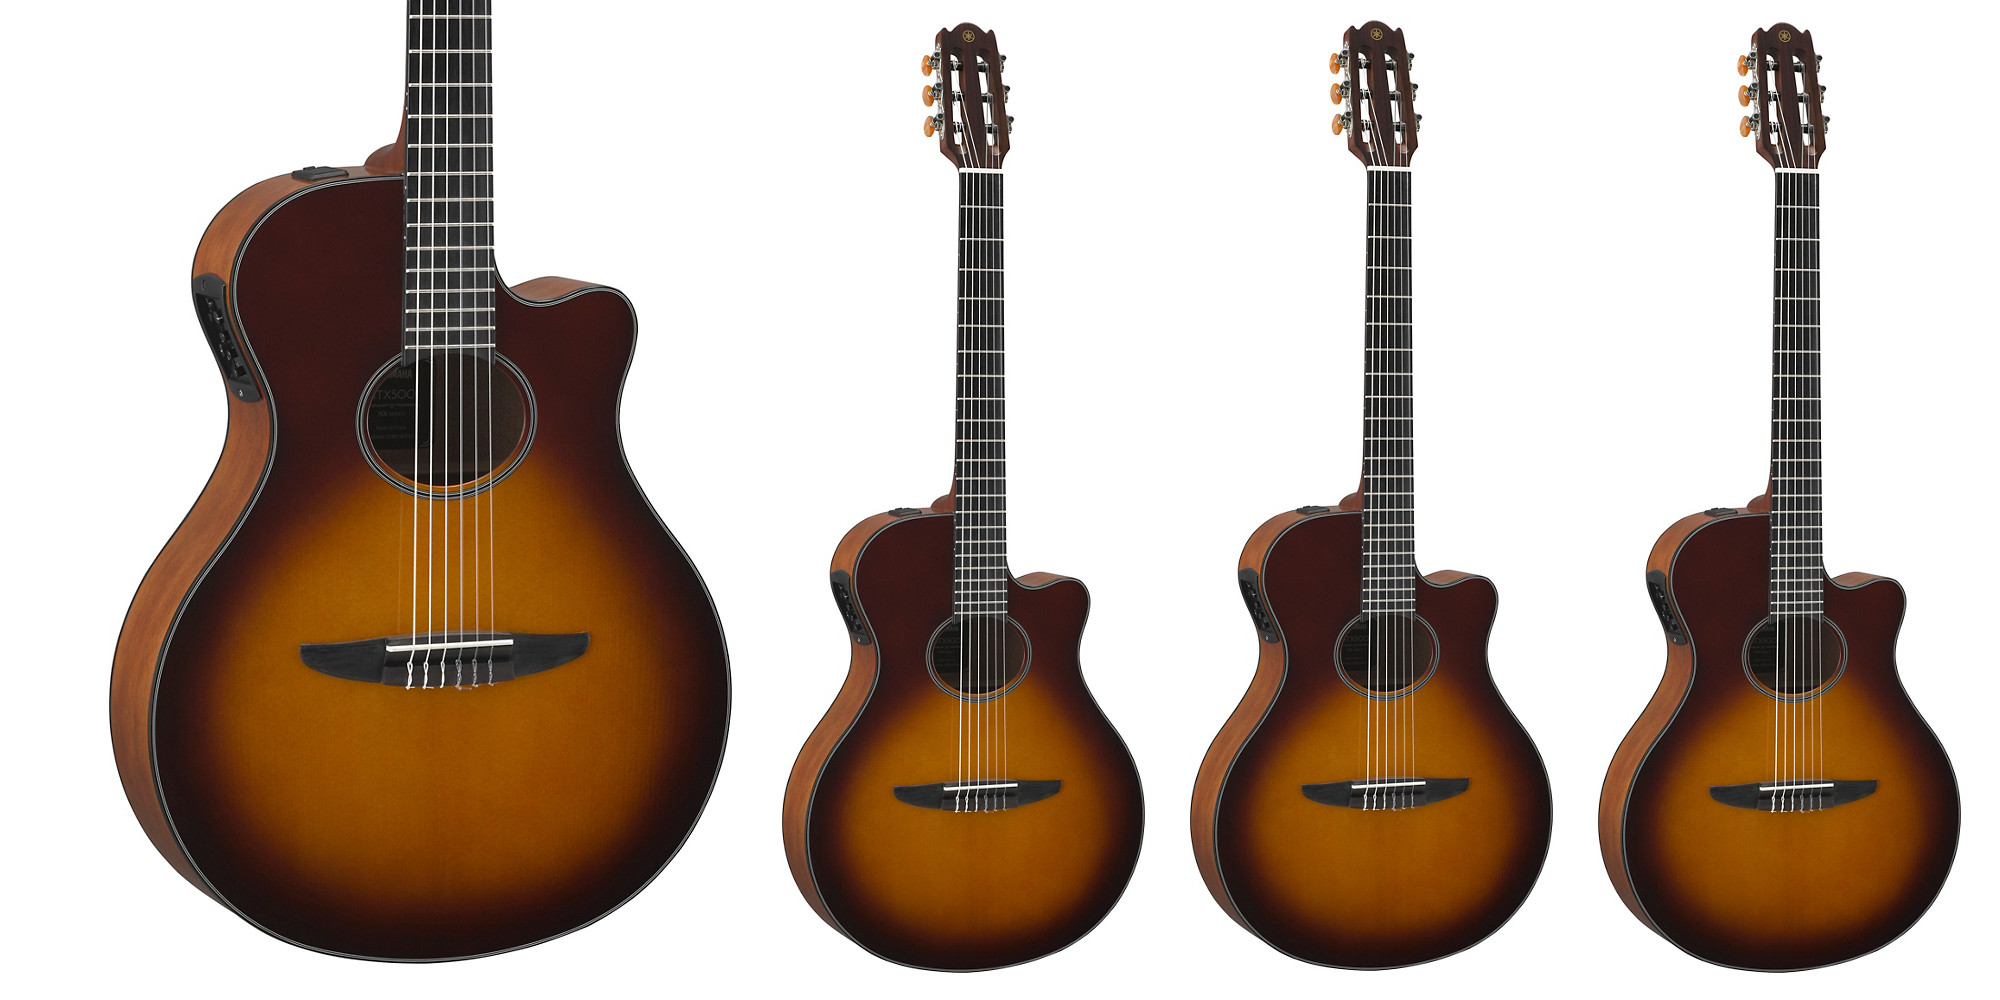 Yamaha's NTX500 is a great starter guitar, especially at $220 off: $230 (Reg. $450)